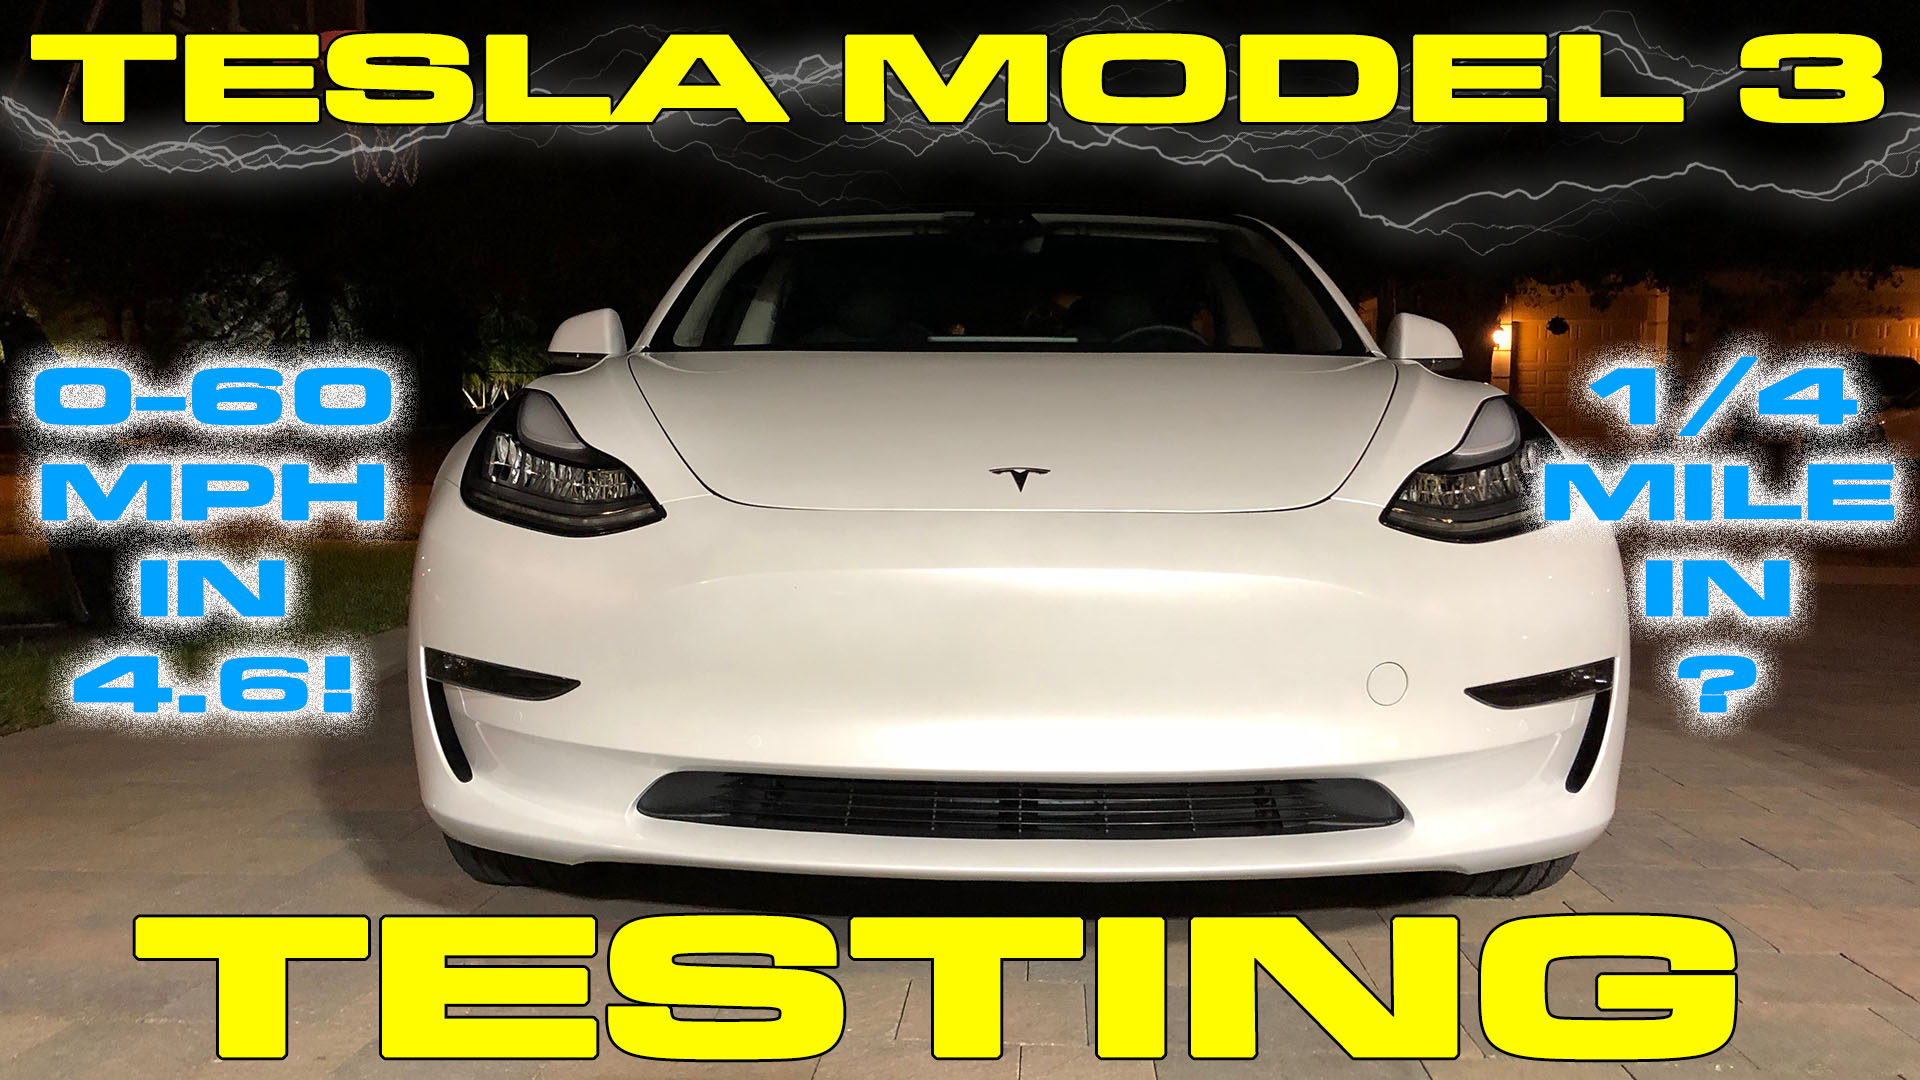 Tesla DragTimescom Drag Racing Fast Cars Muscle Cars Blog - We drive fast cars